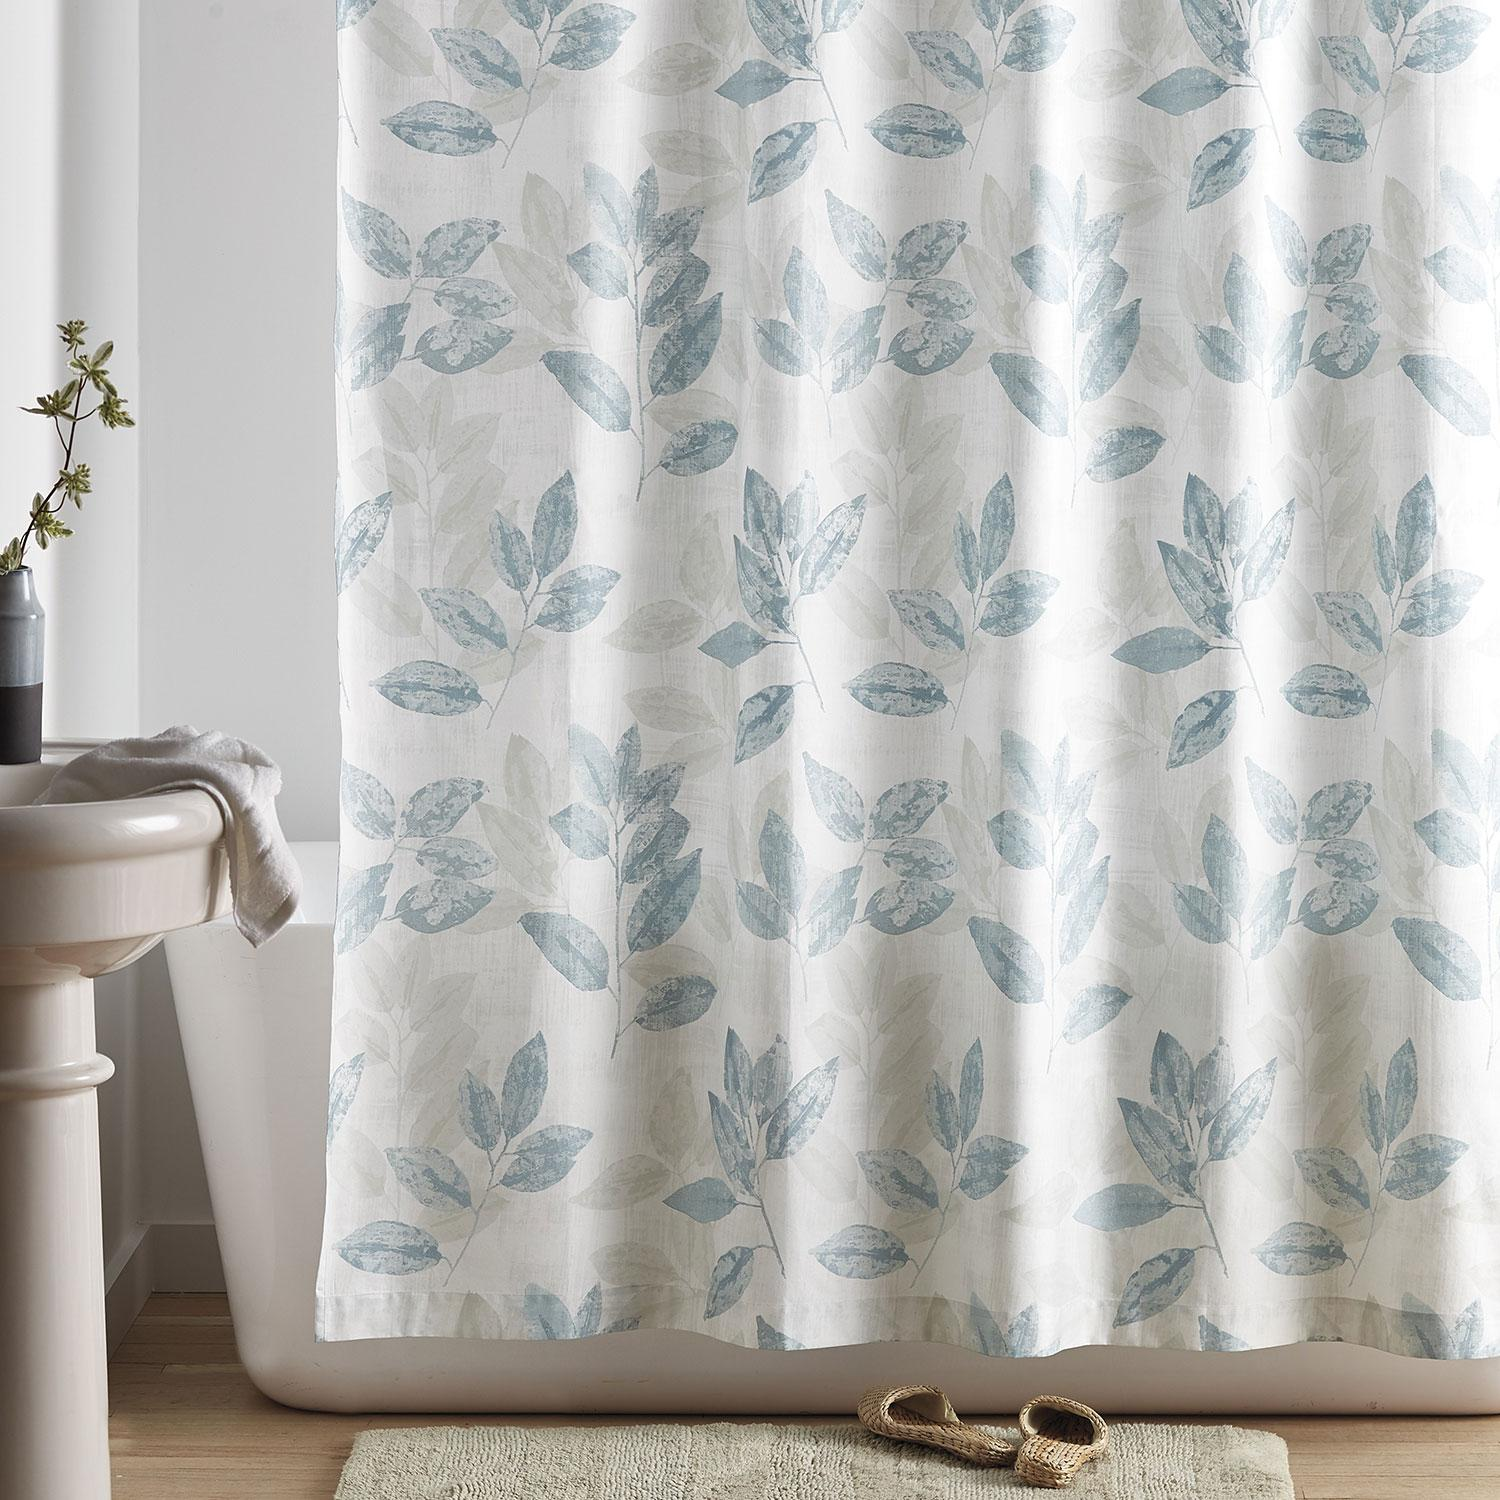 Turner Leaf Shower Curtain The Company Store Outdoor Cushions